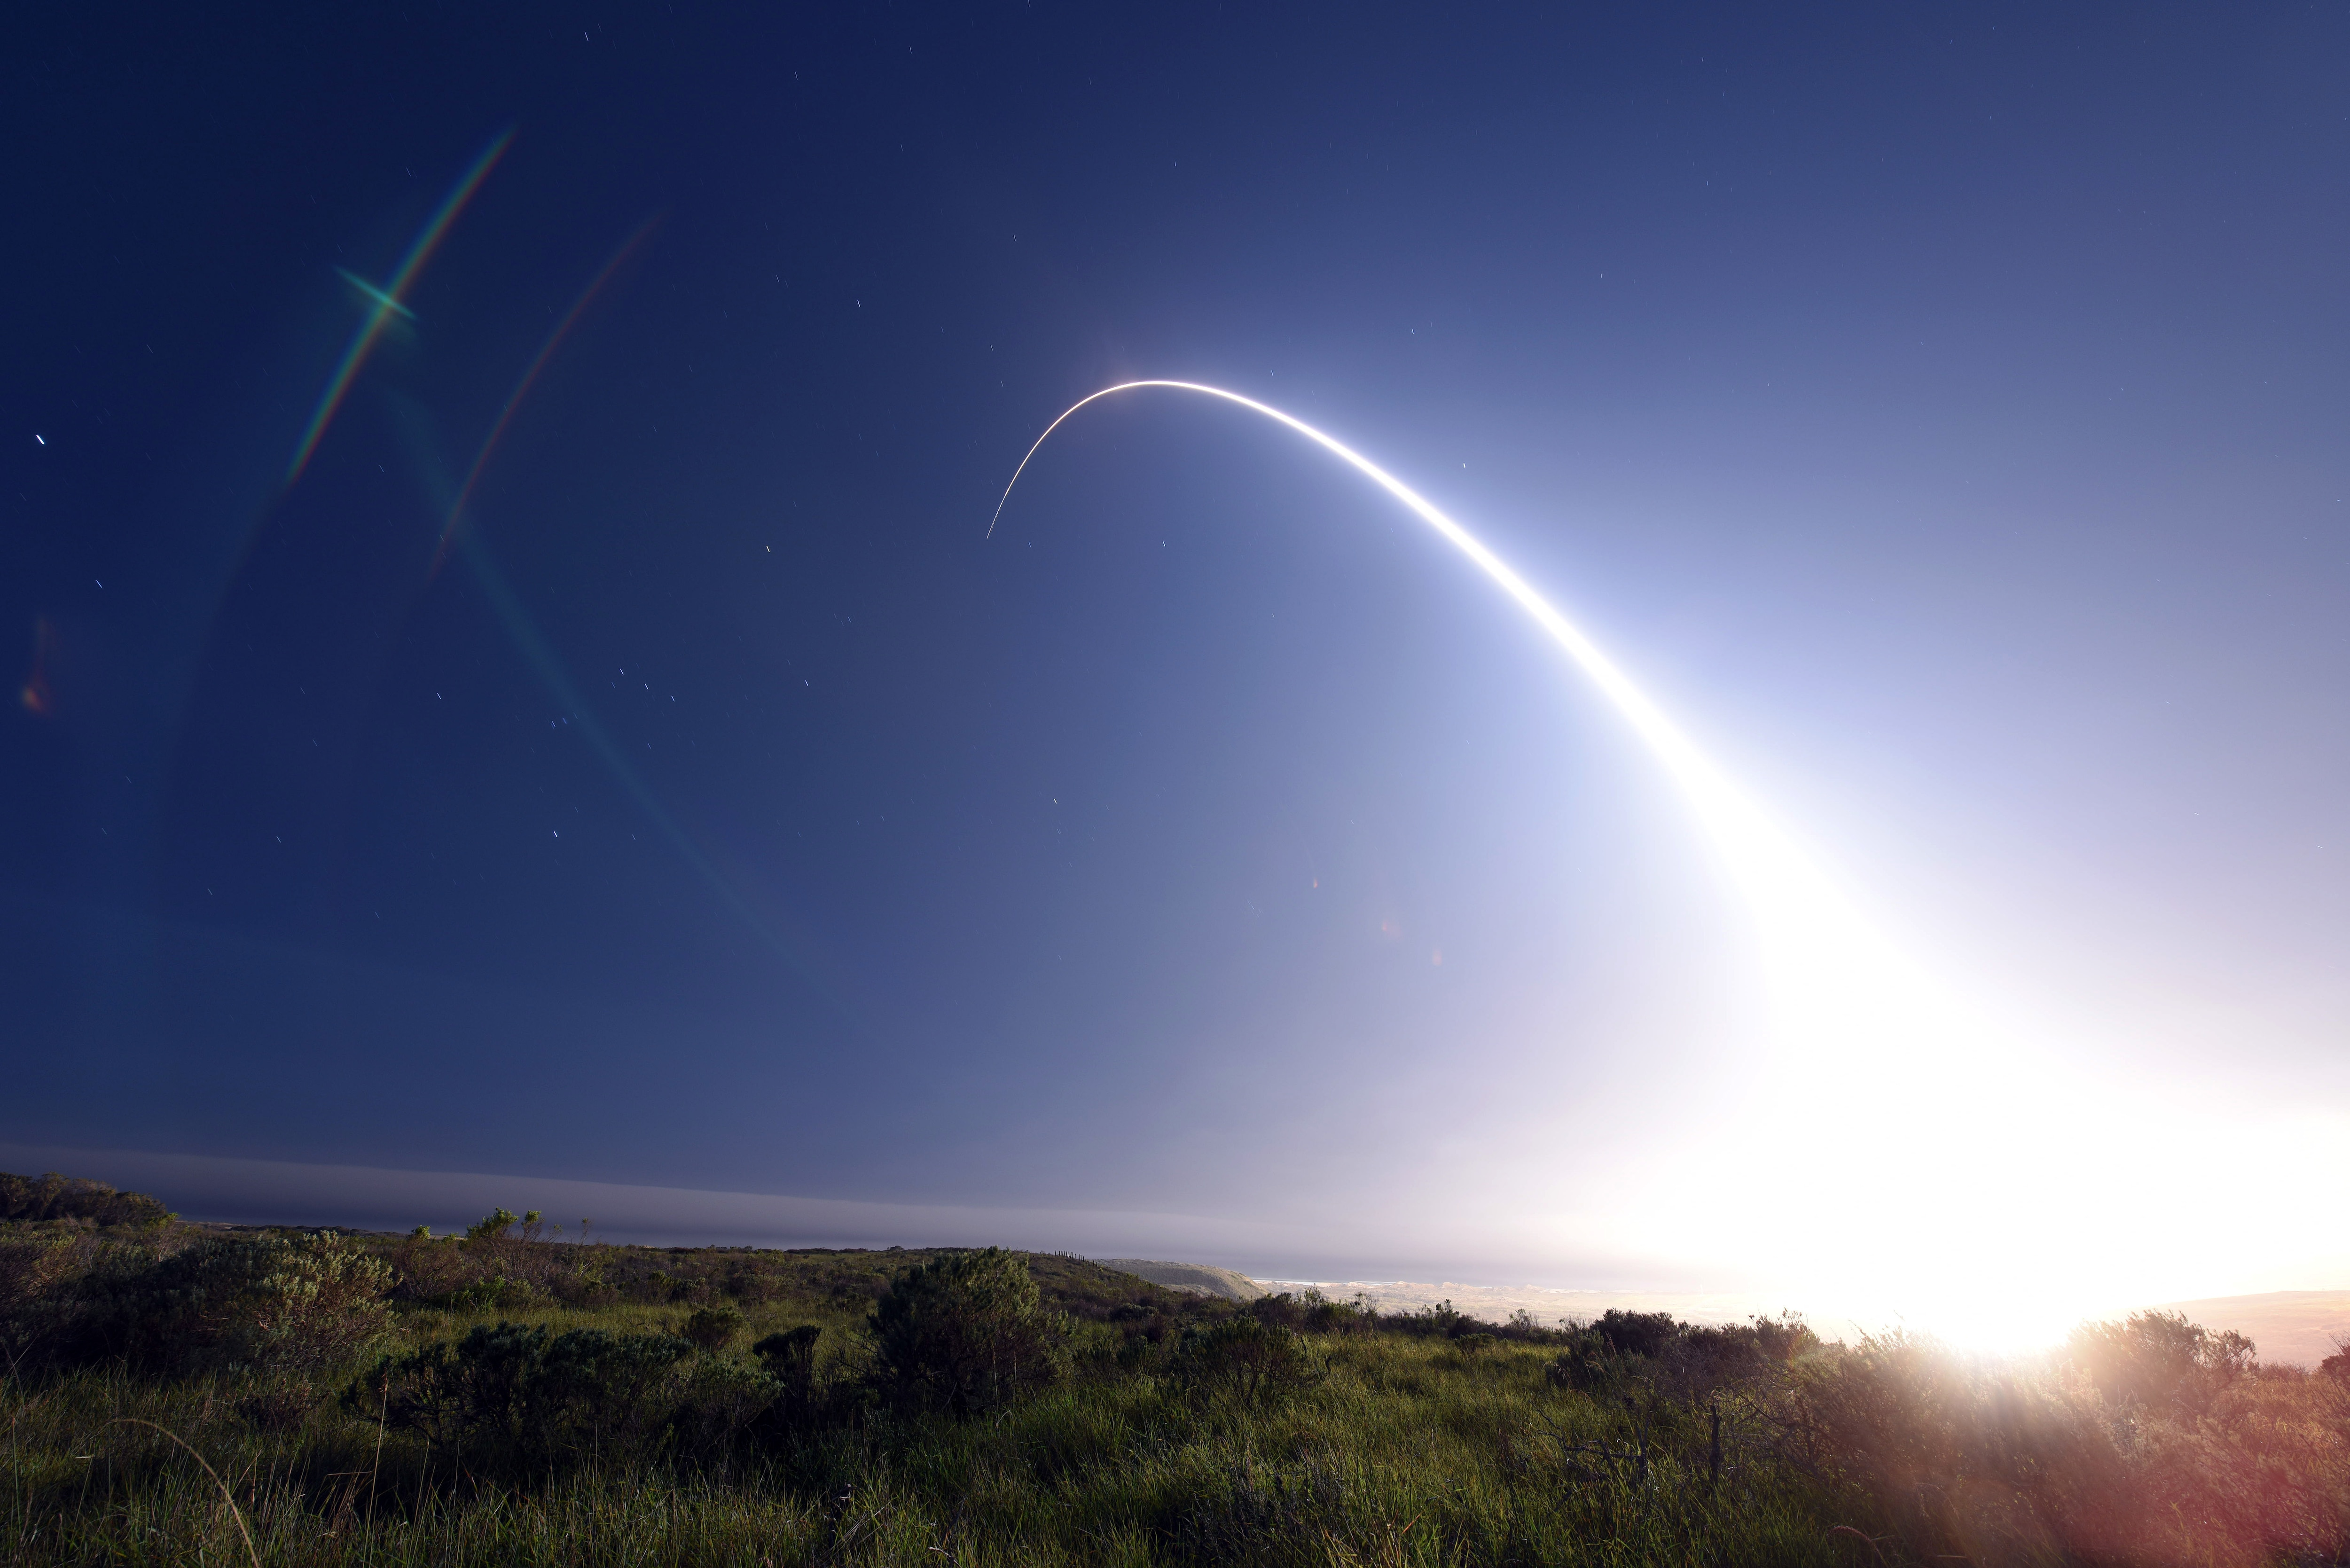 Lockheed pitches 3-D printed parts for next-generation ICBM program